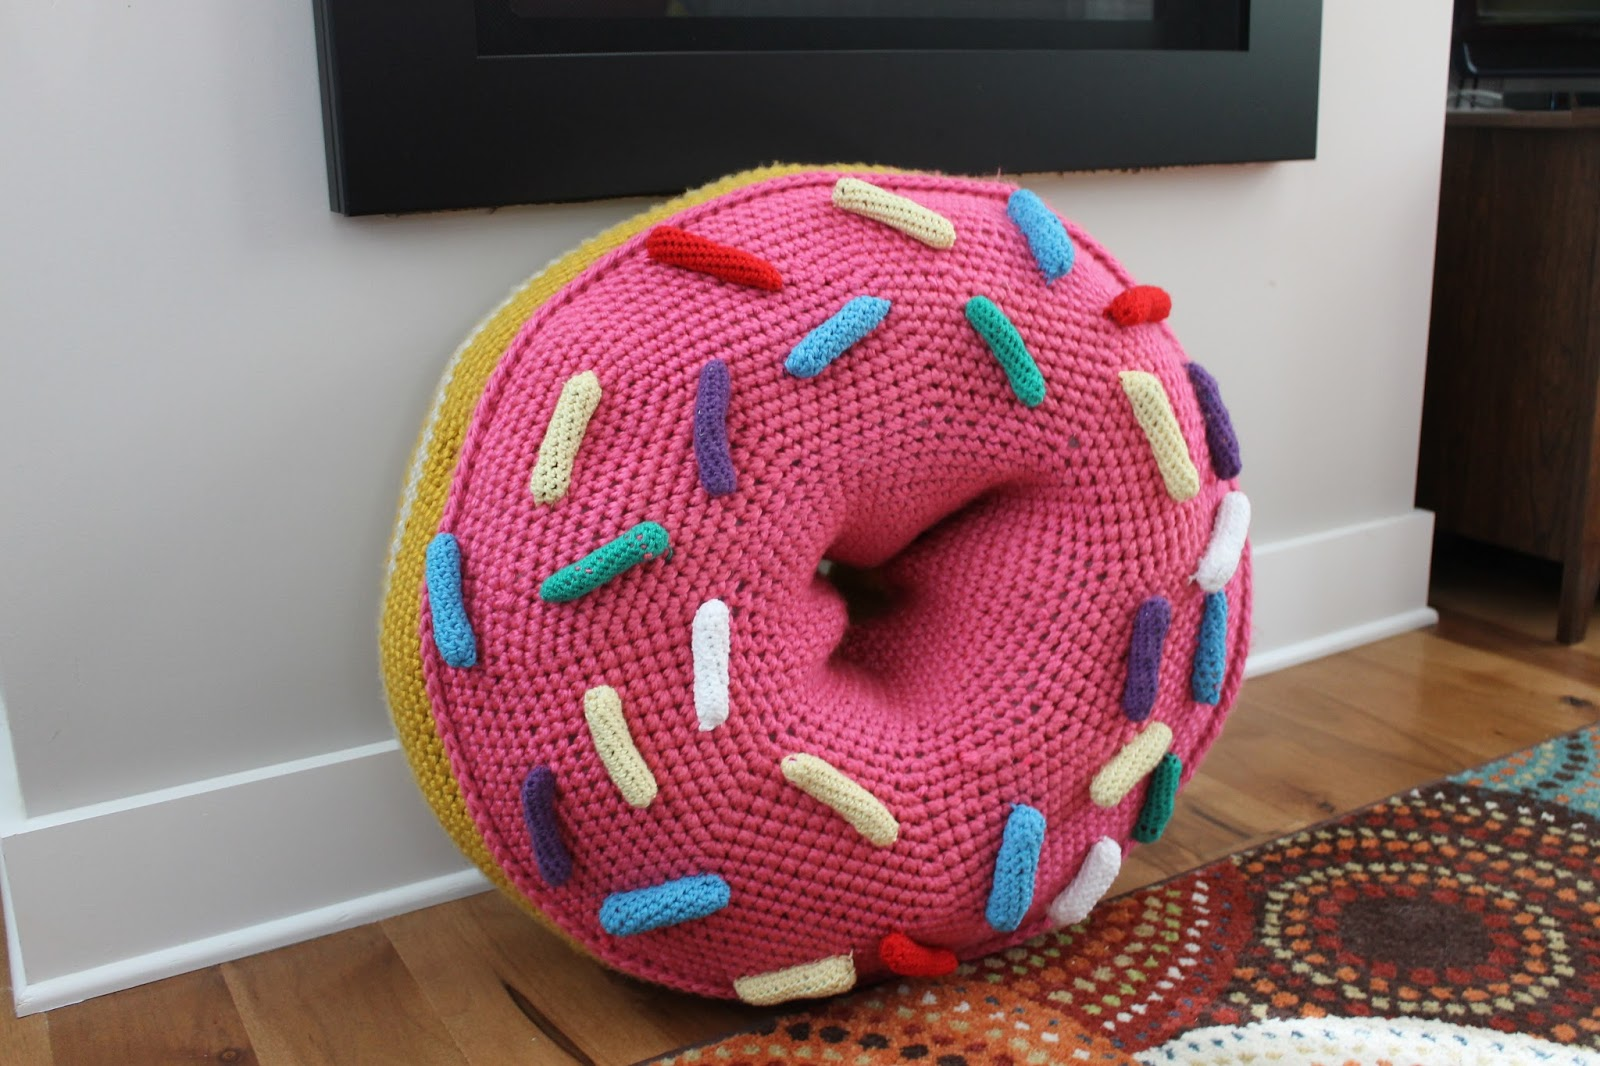 The Feisty Redhead: Crochet Giant Doughnut Floor Pouf